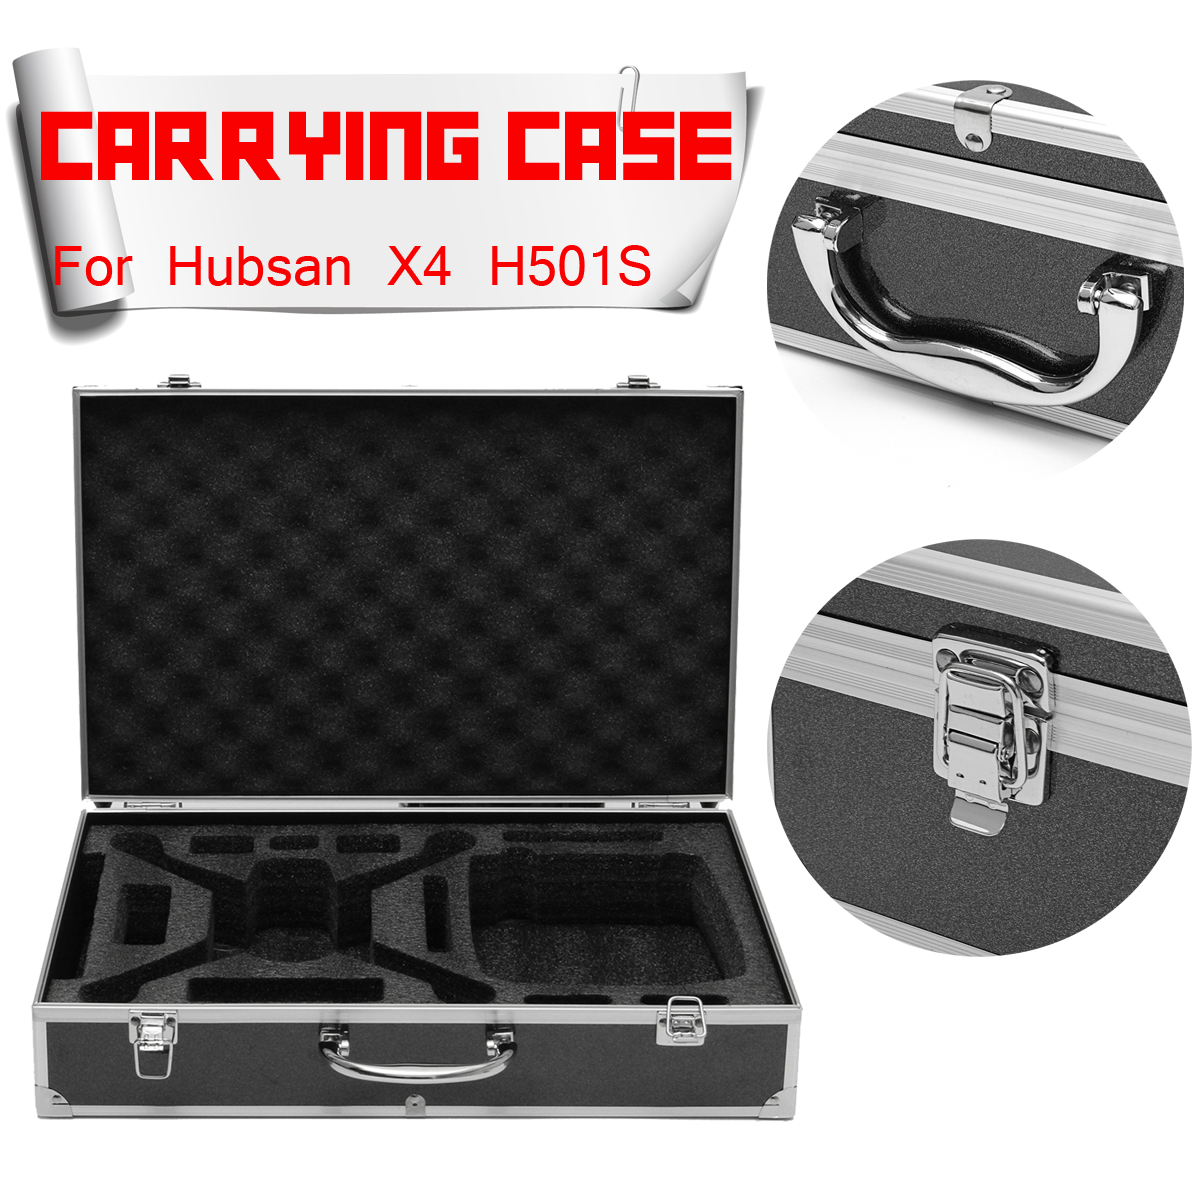 Waterproof Aluminum Case Handy Bag Carry Box For Hubsan X4 H501S FPV Quadcopter Carrying Case